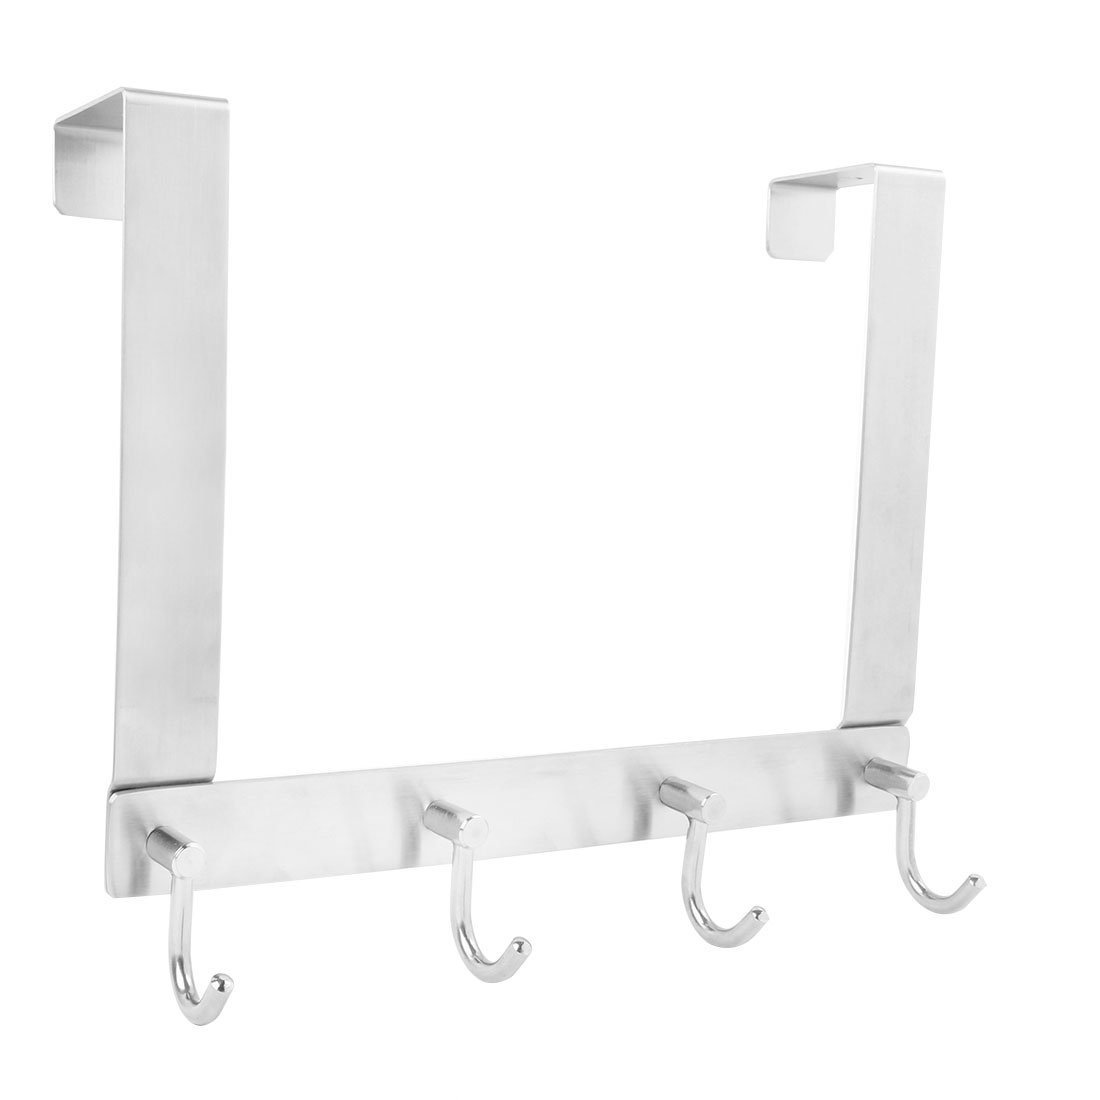 uxcell 304 Stainless Steel J Shaped Over The Door Hook Organizer Rack Hanging Coats Hats 4 Hooks